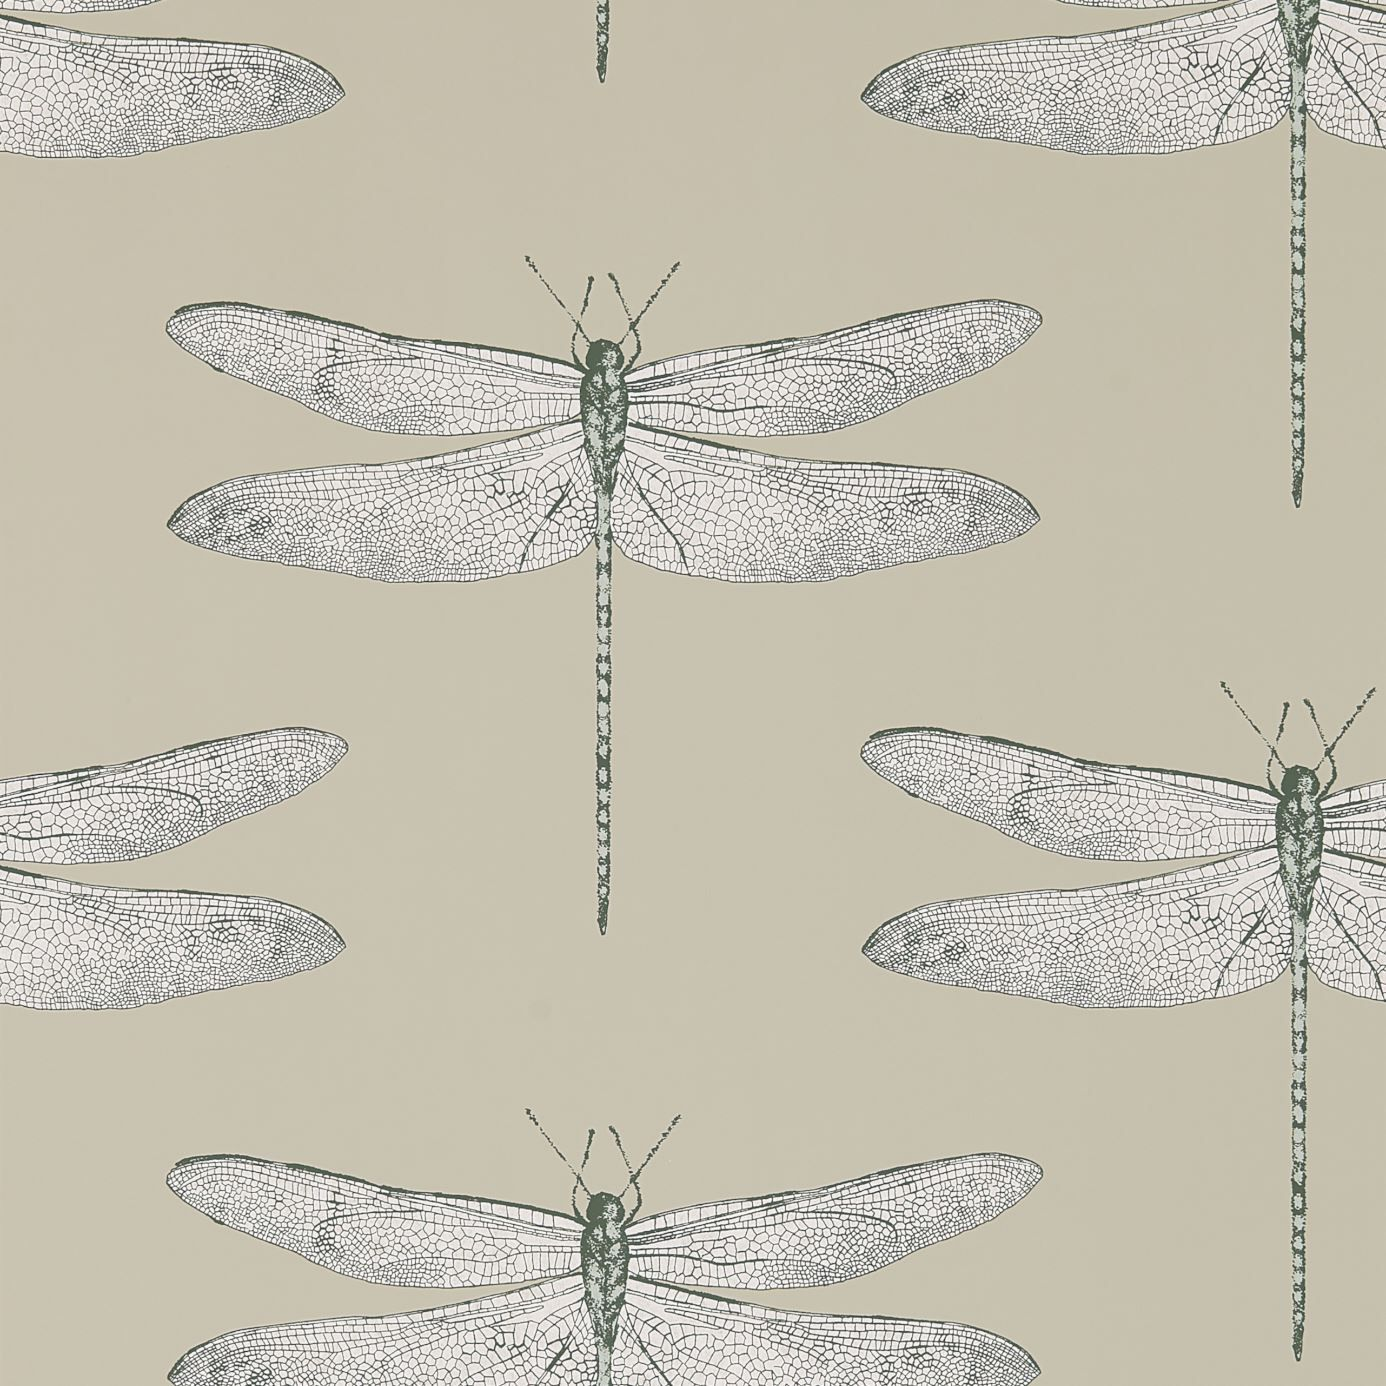 Online Shop Where You Can Buy Designer Curtain Fabrics With Made To Measure Curtains Wallpapers And Rugs From UKs Leading